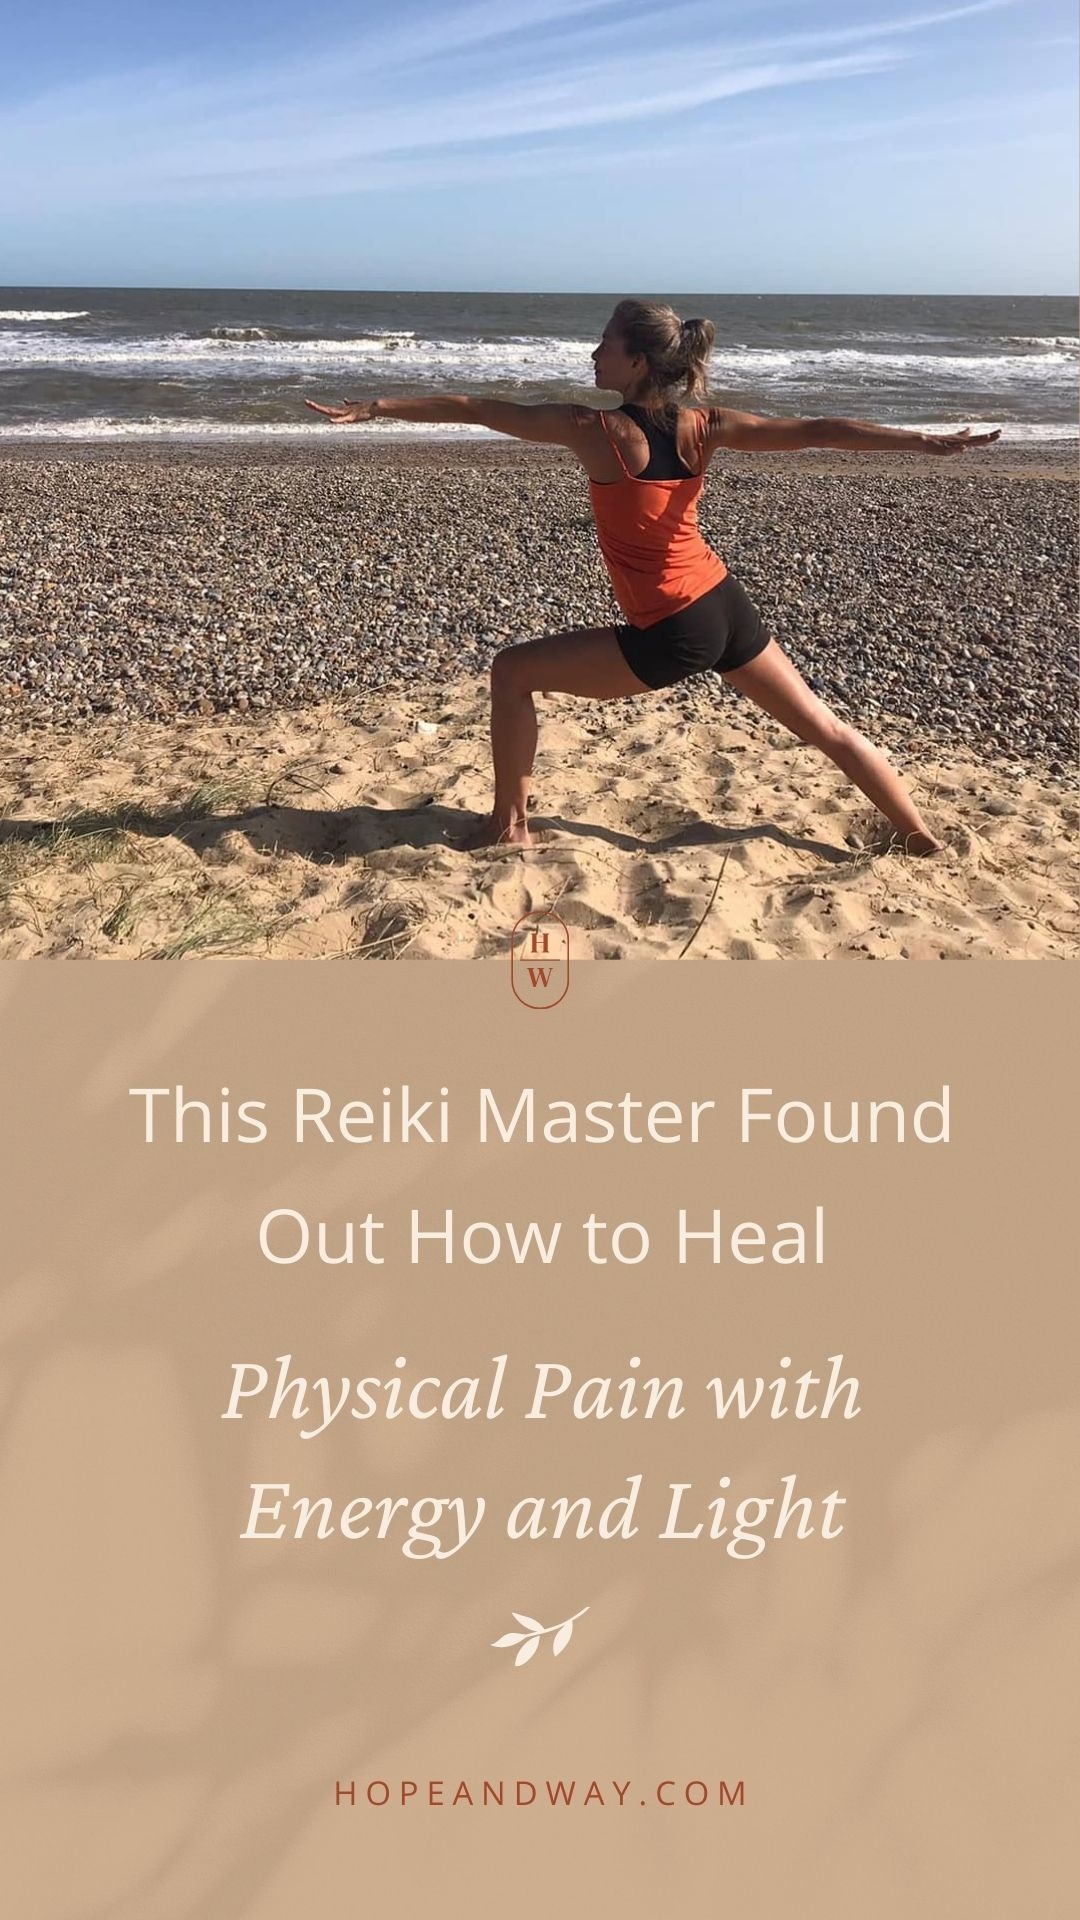 This Reiki Master Found Out How to Heal Physical Pain with Energy and Light - Interview with Vanessa Lee